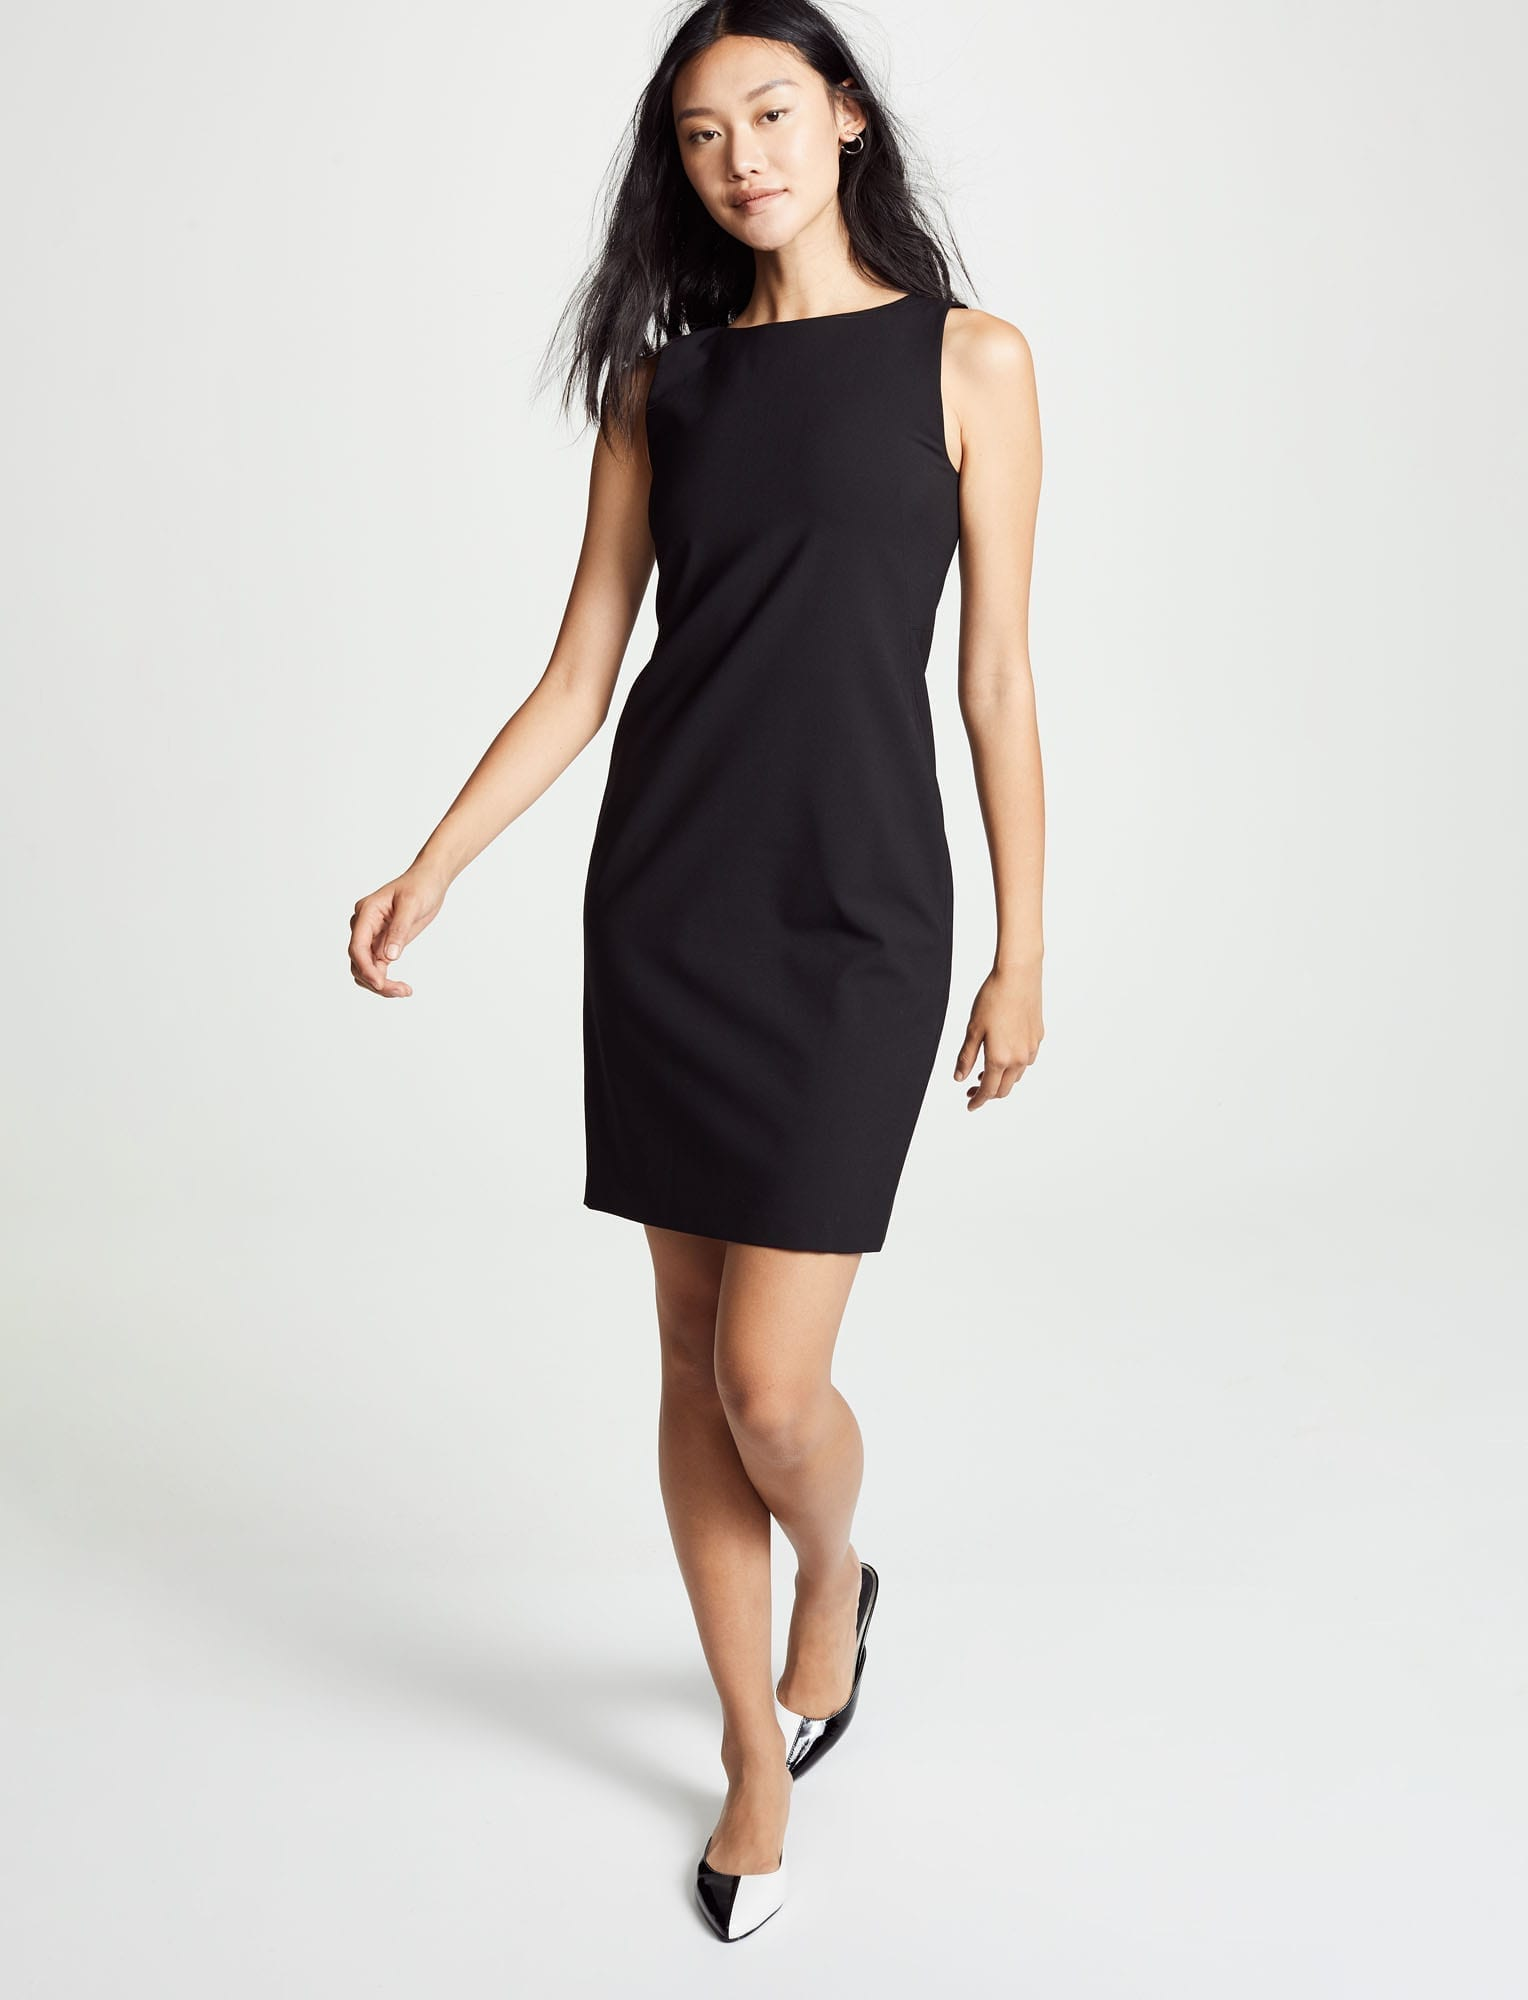 THEORY Betty 2B Black Dress